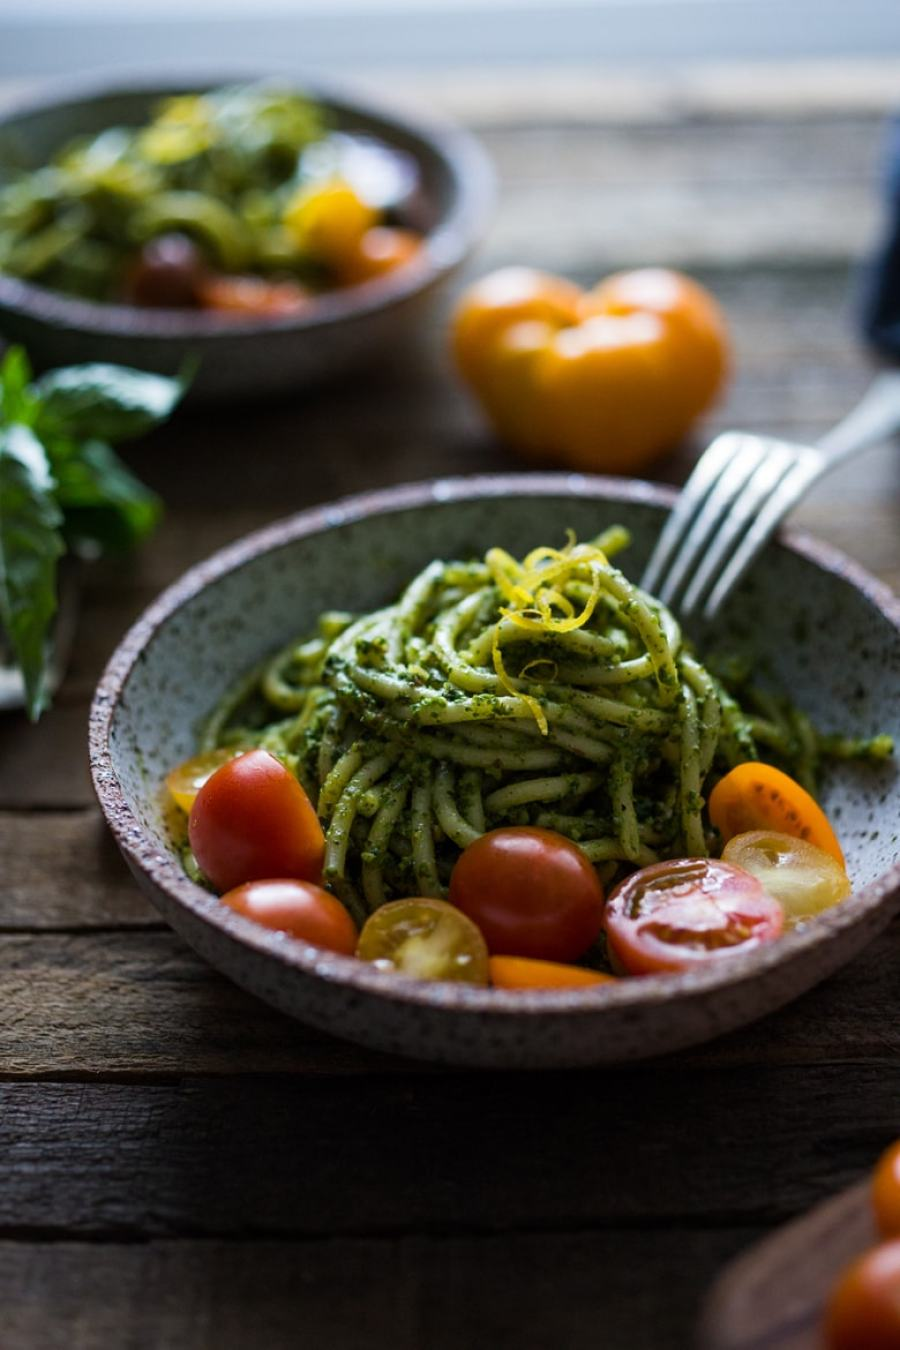 Bucatini Pasta with Arugula Almond Pesto and mini heirloom tomatoes ...